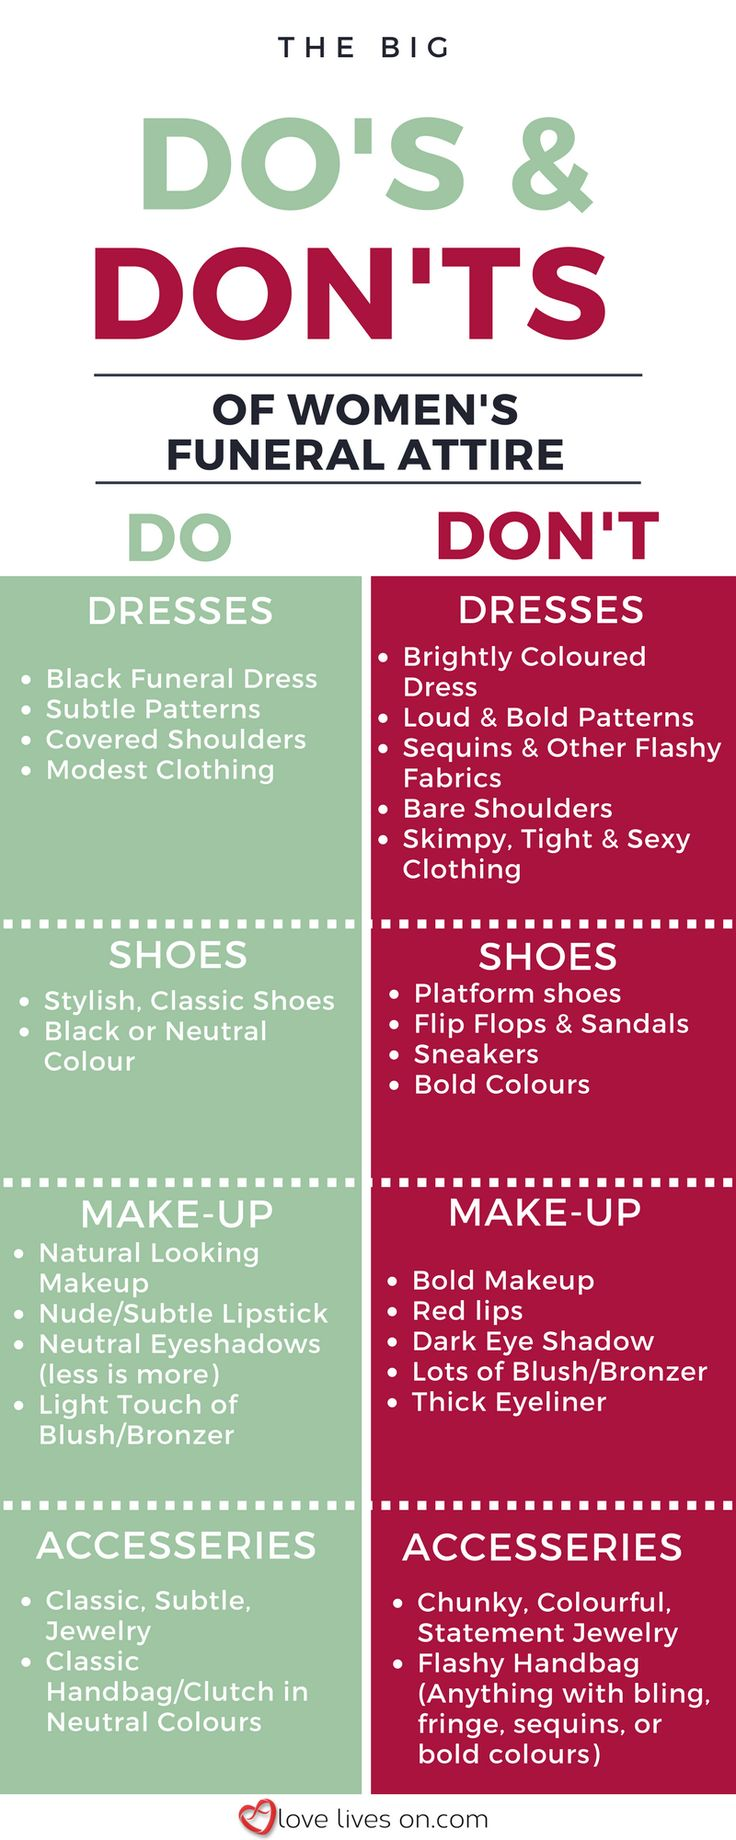 Infographic: The major DO's and Don't for women's funeral attire when deciding what to wear to a funeral.